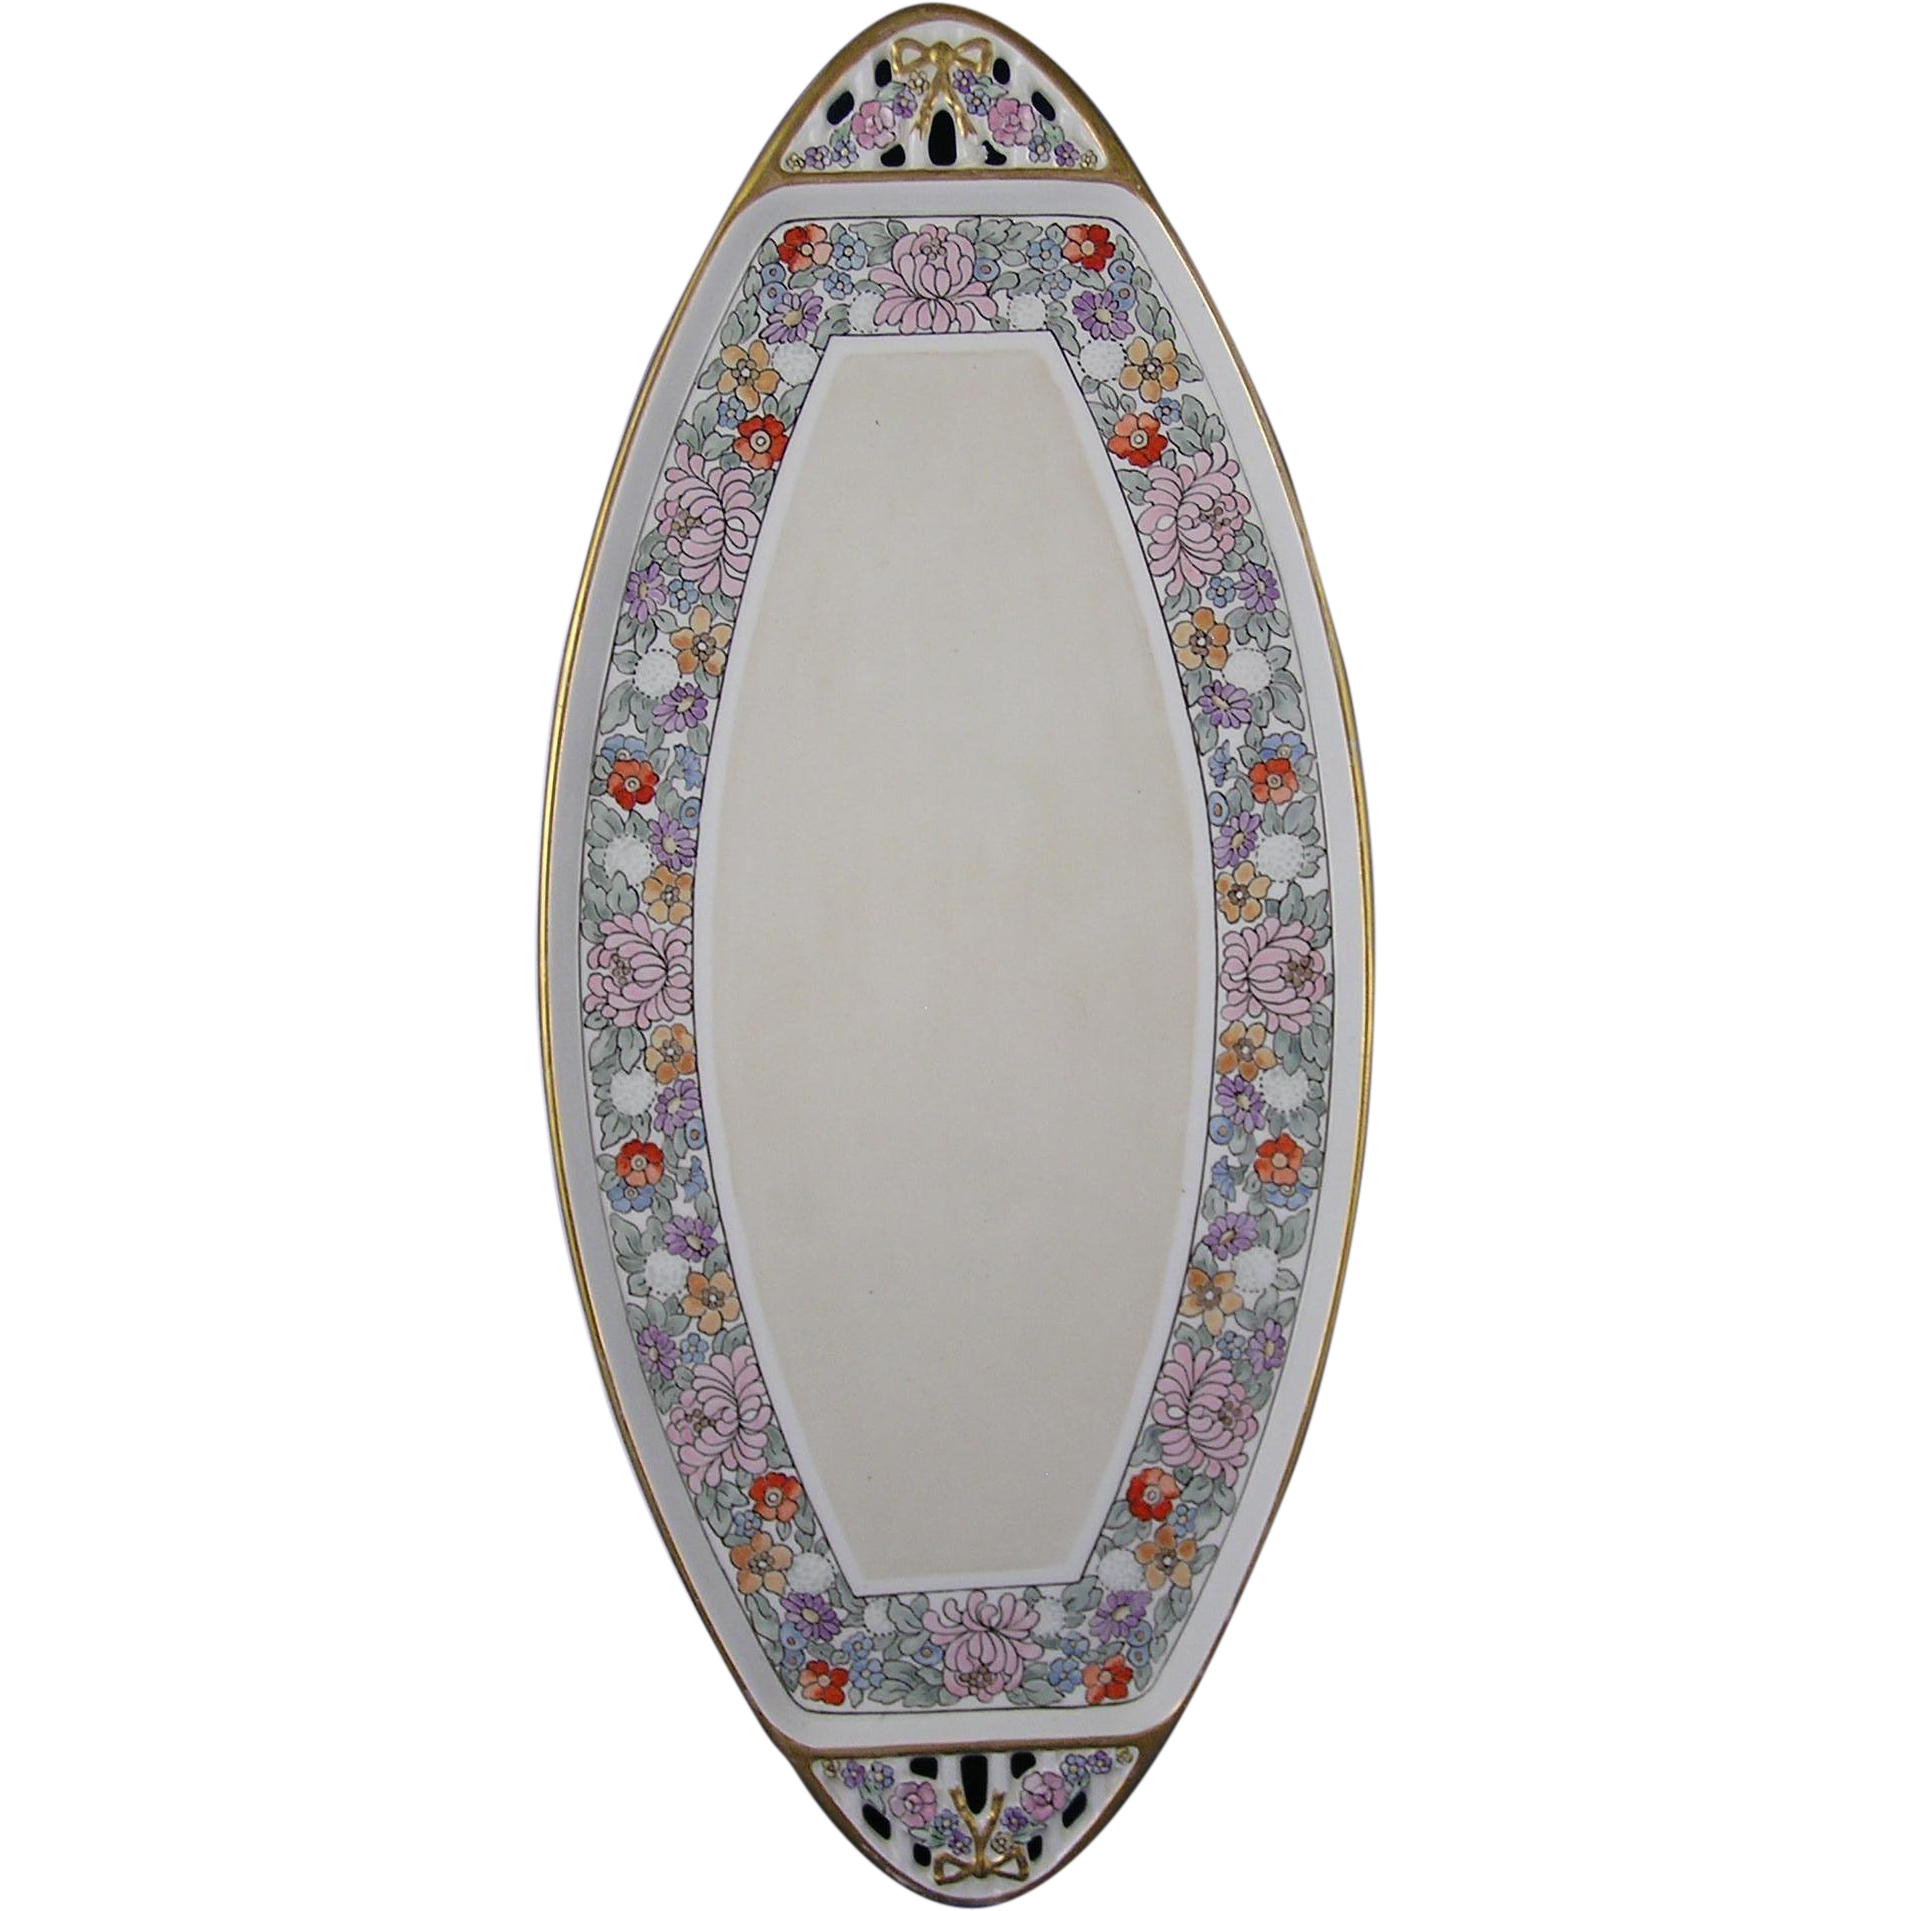 Max Roesler Germany Atlan Club Enameled Floral Design Handled Tray (c.1900-1930)